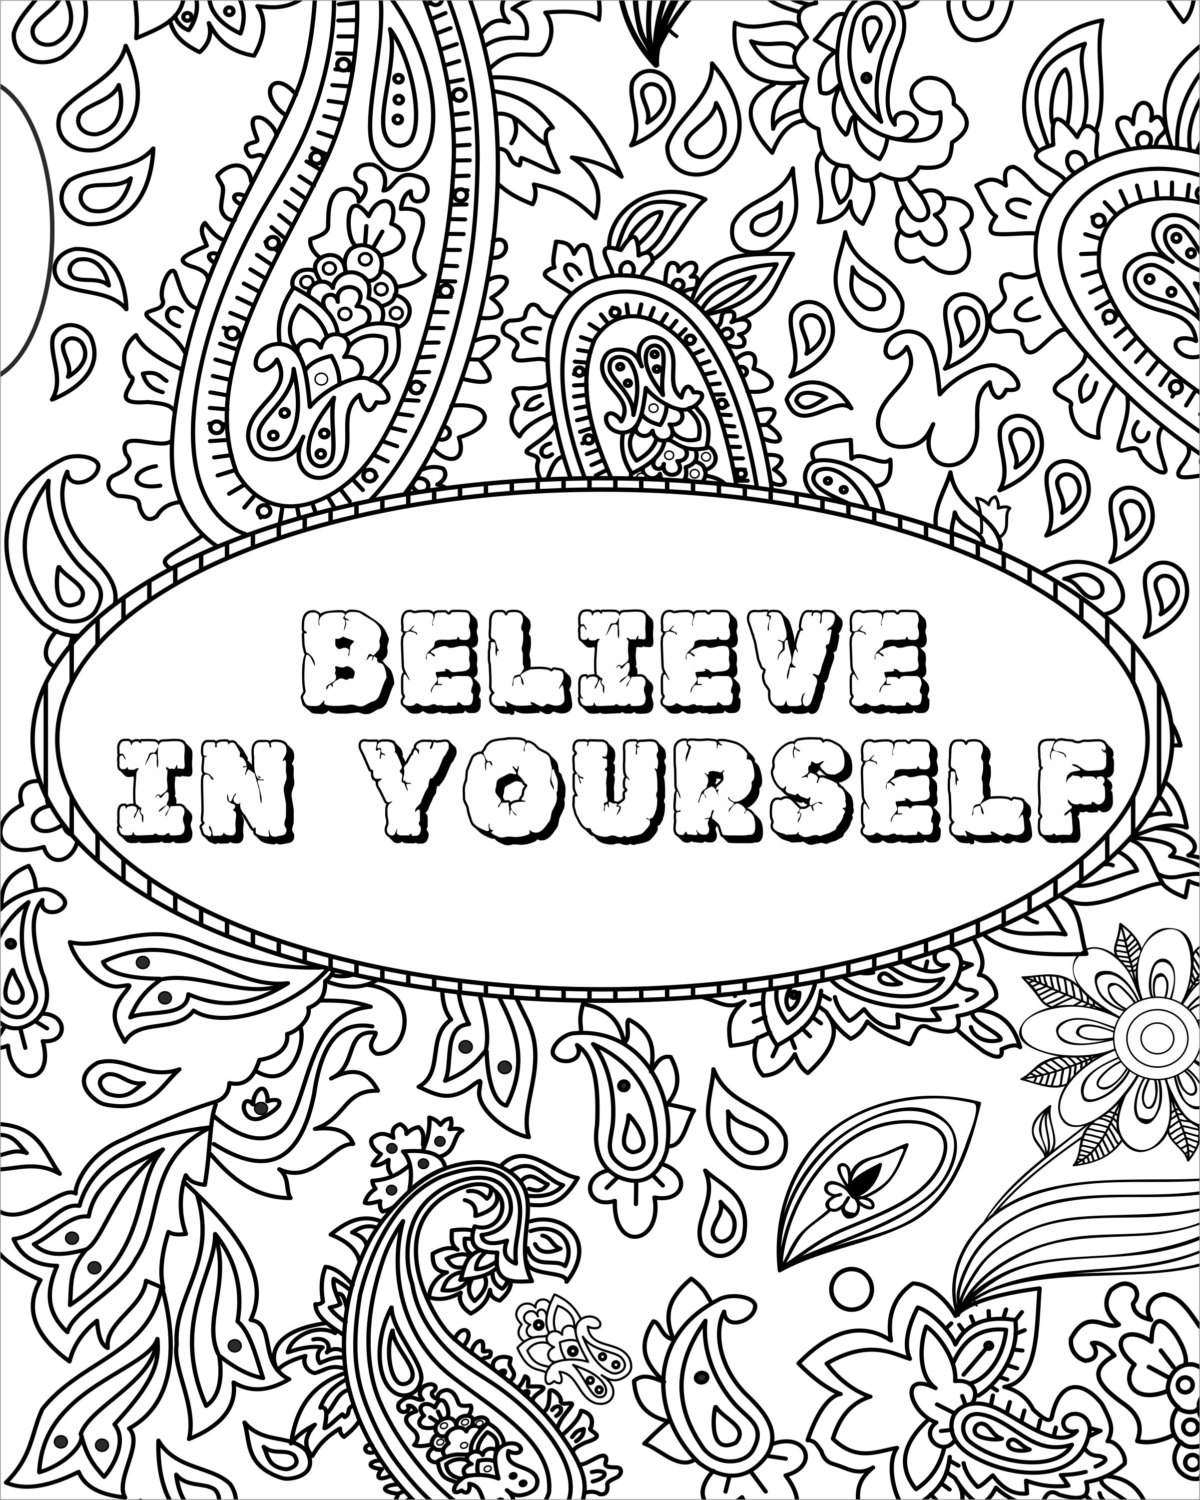 coloring pages quotes for adults quote coloring pages for adults and teens best coloring for adults pages quotes coloring